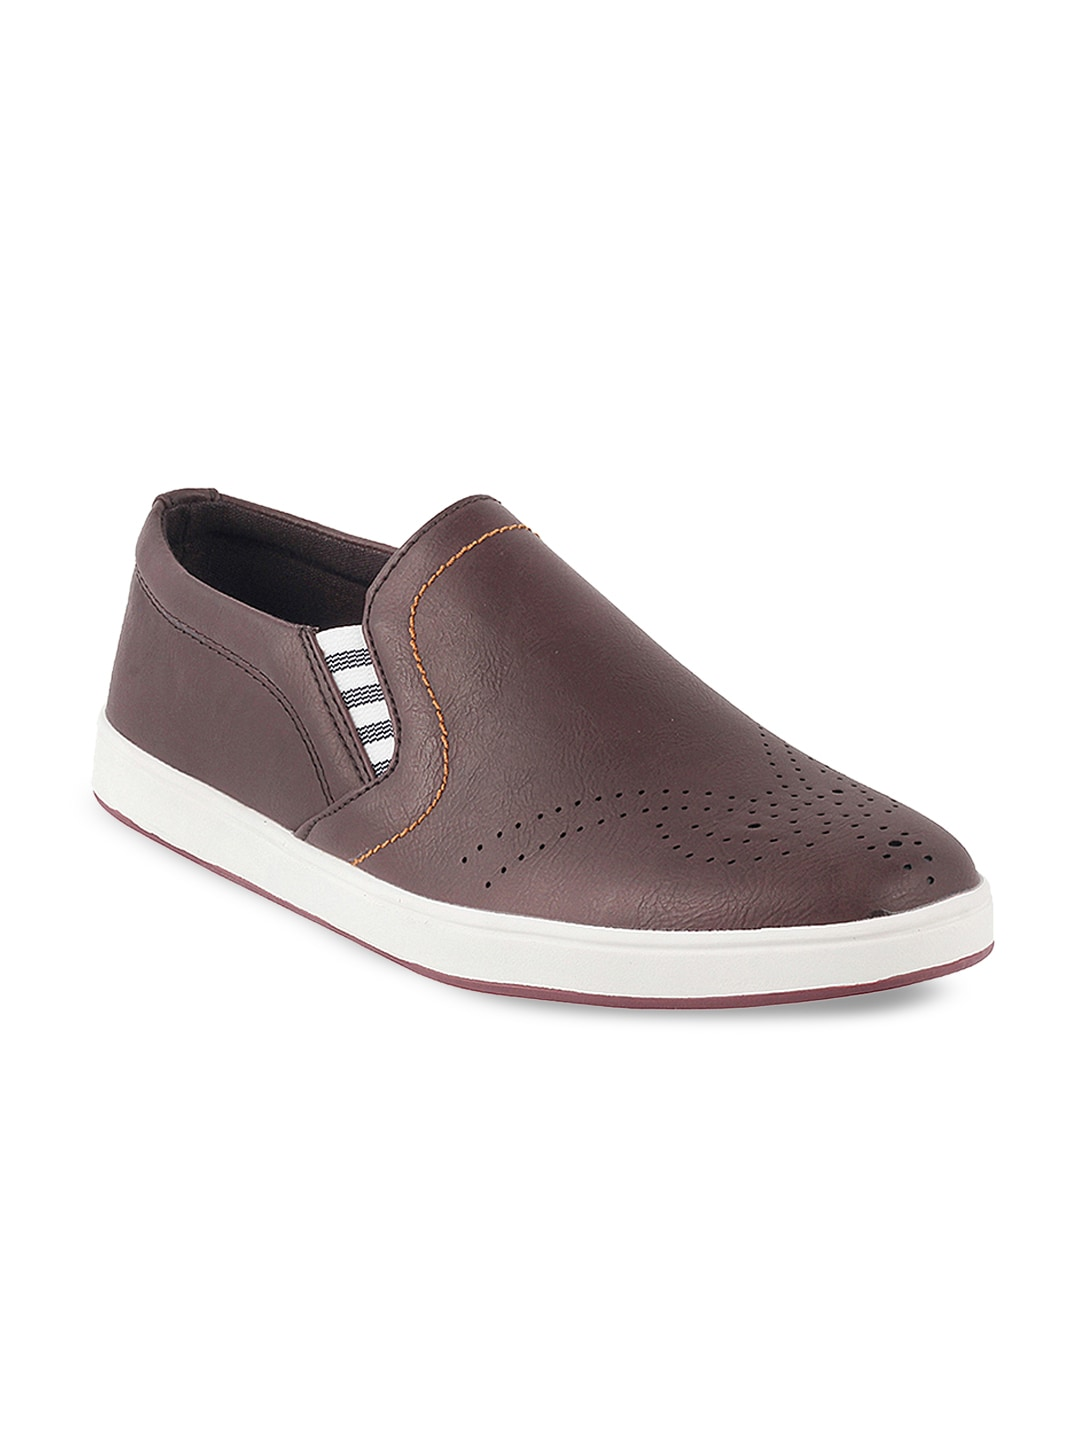 64ec2a24bd7 Casual Shoes For Men - Buy Casual   Flat Shoes For Men